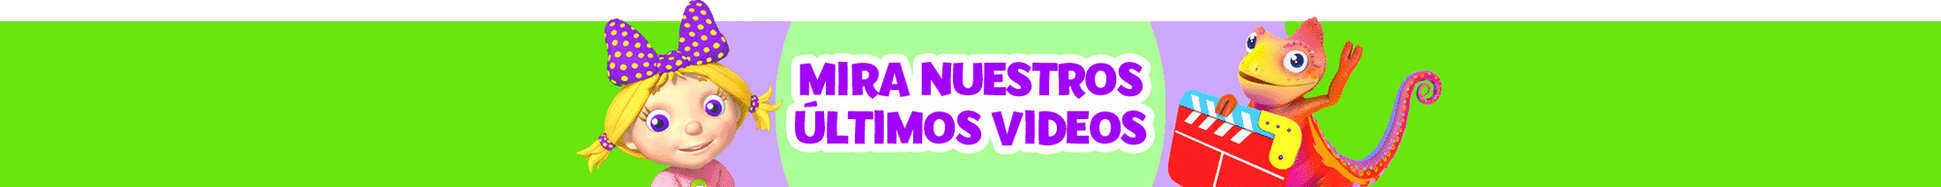 spanish - watch-our-latest-videos-banner